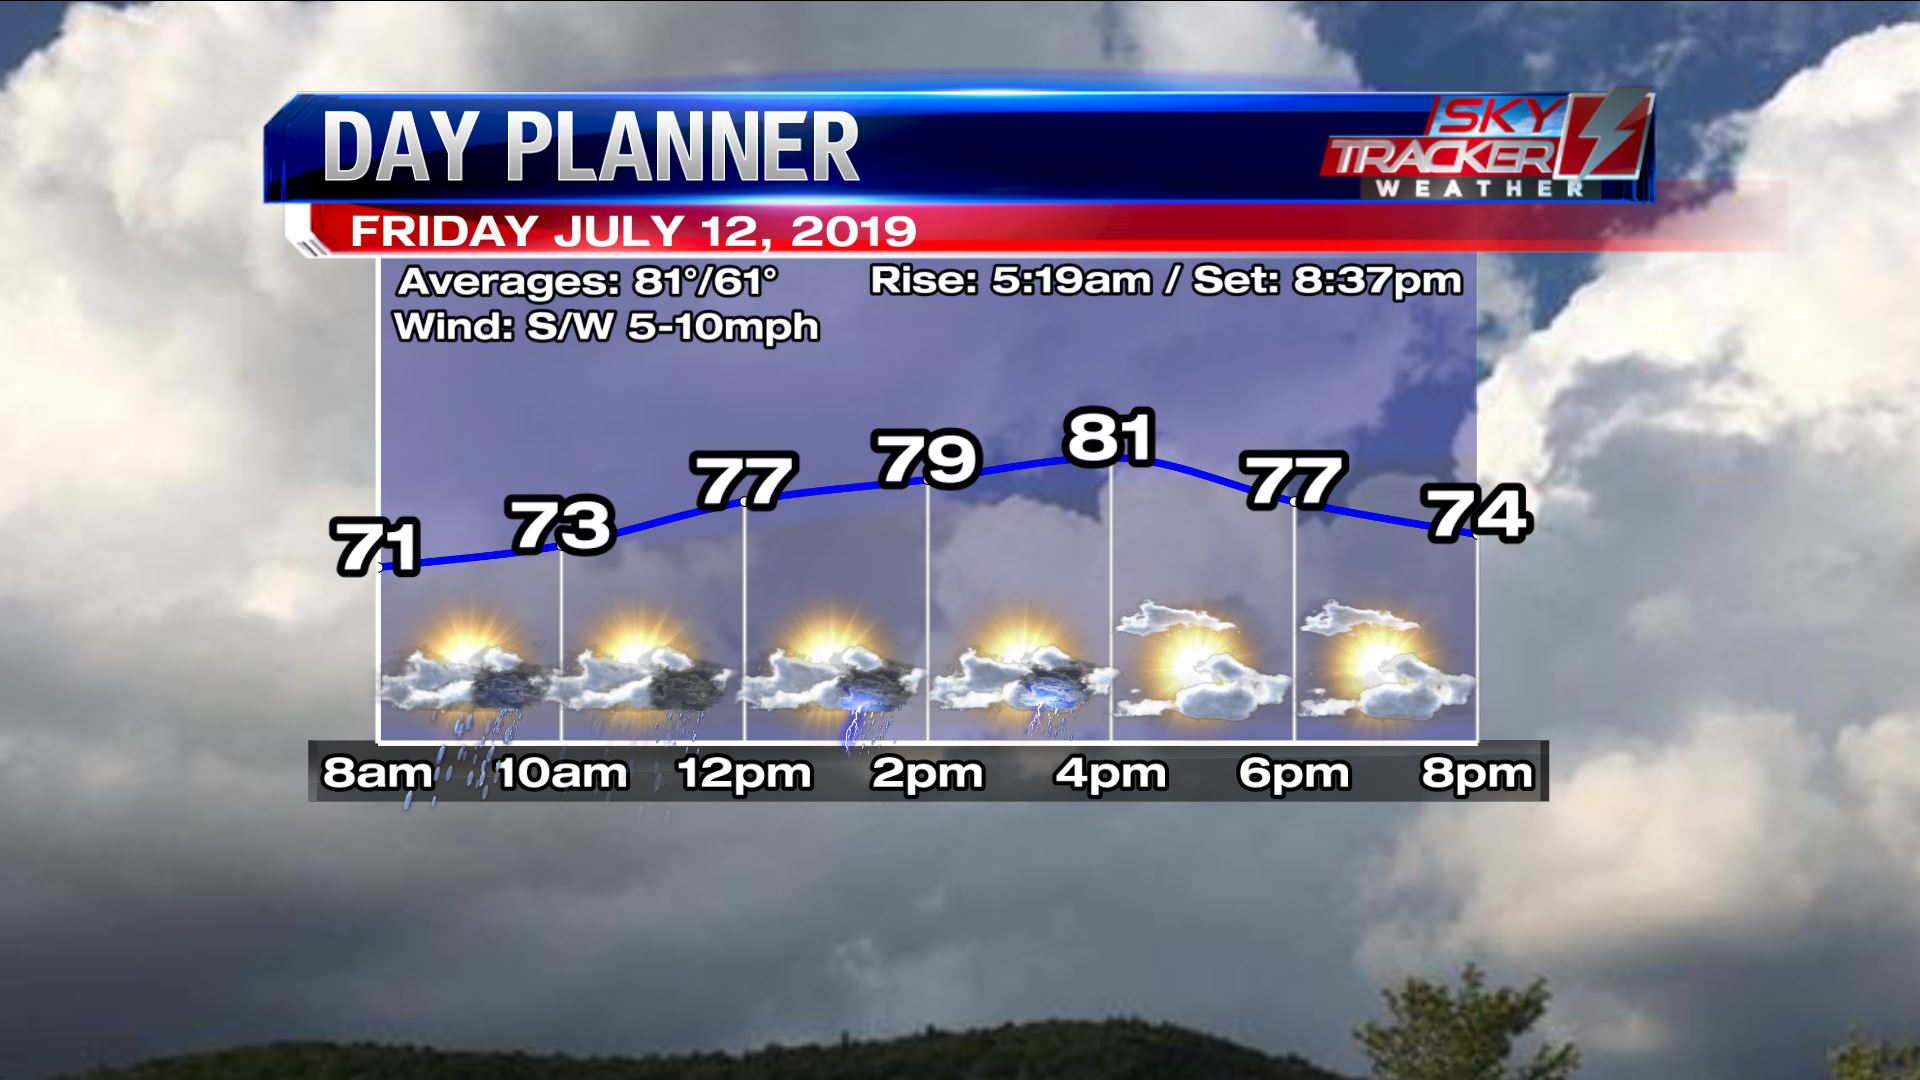 Planner for Friday July 12 2019